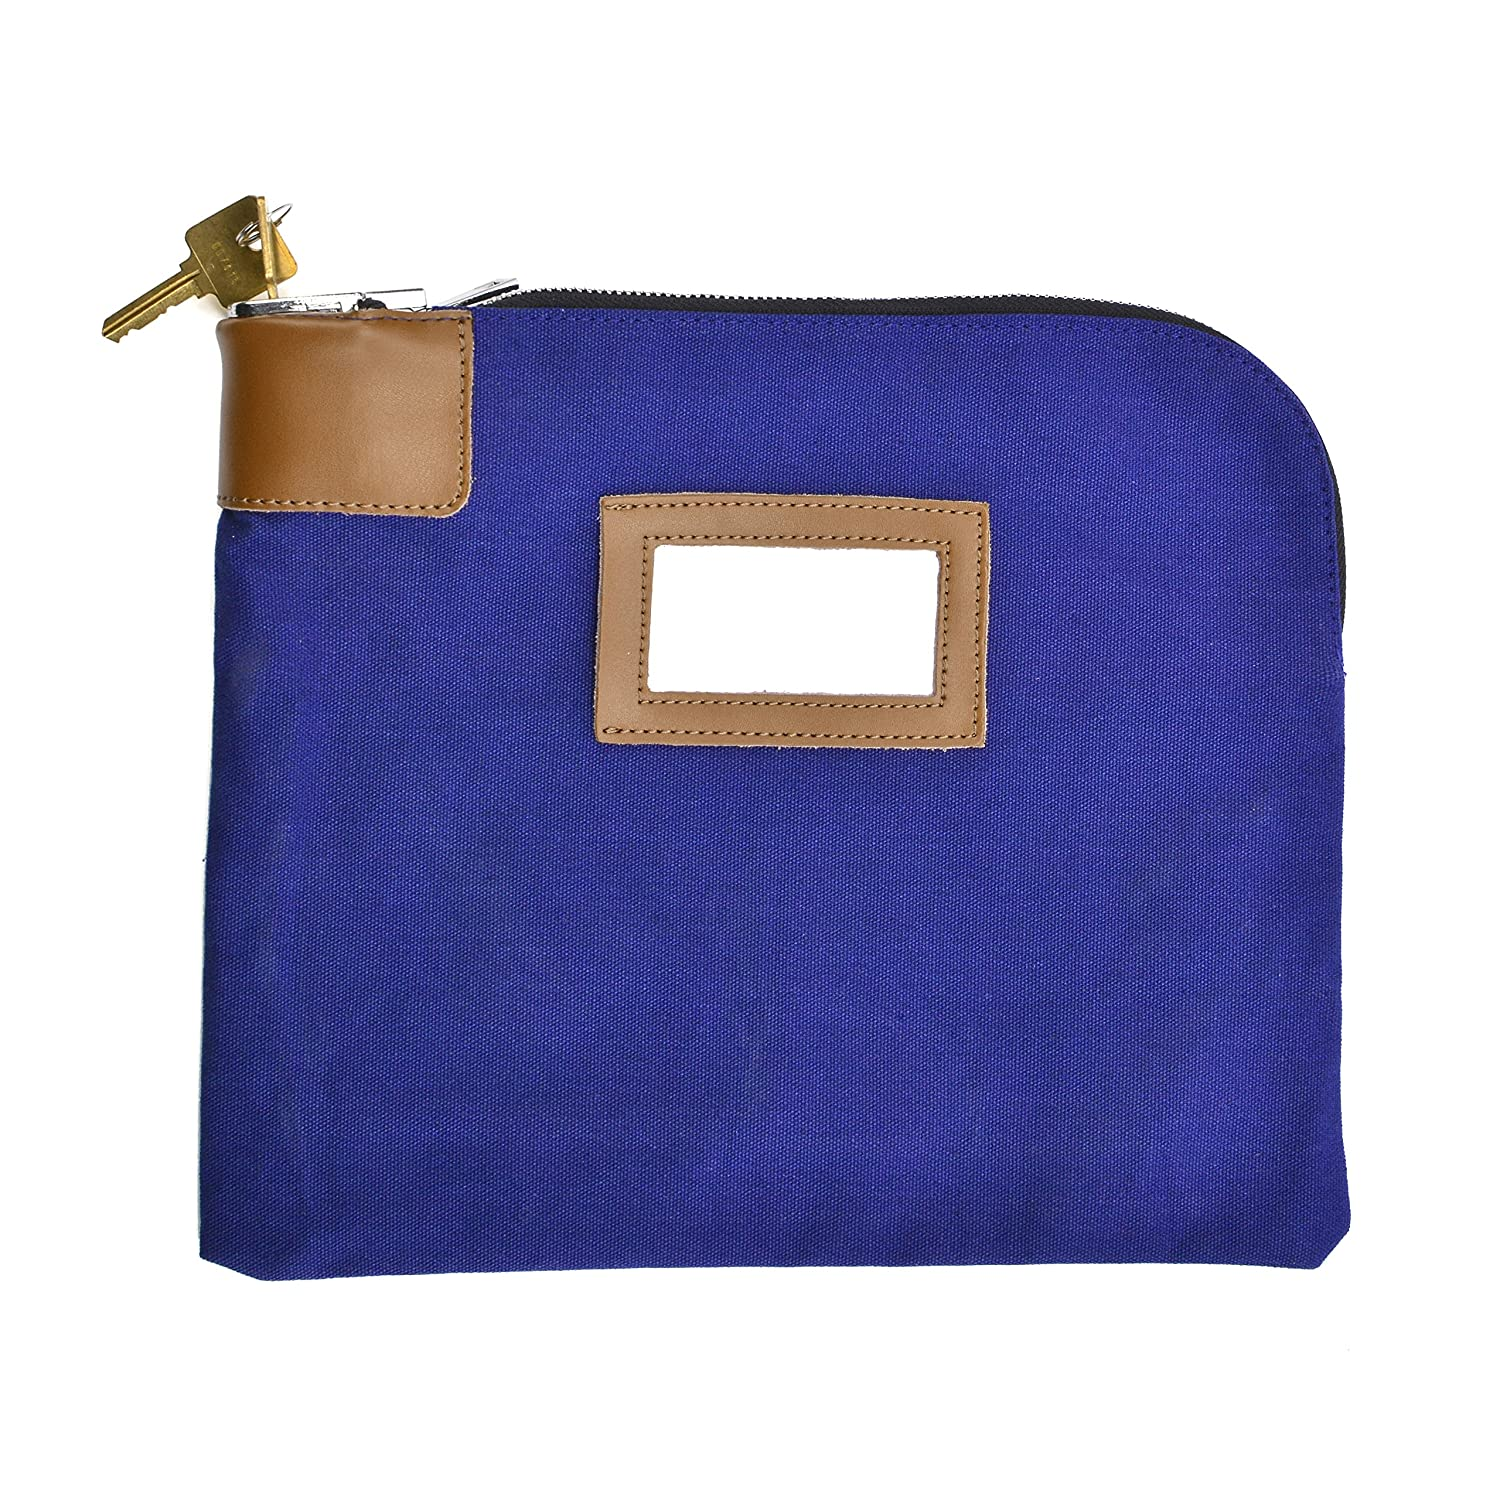 Security/Night Deposit Bag with 2 Keys, Locking Bank Bag Canvas 11 x 8-1/2 Inches, Blue LUCK COLLECTION